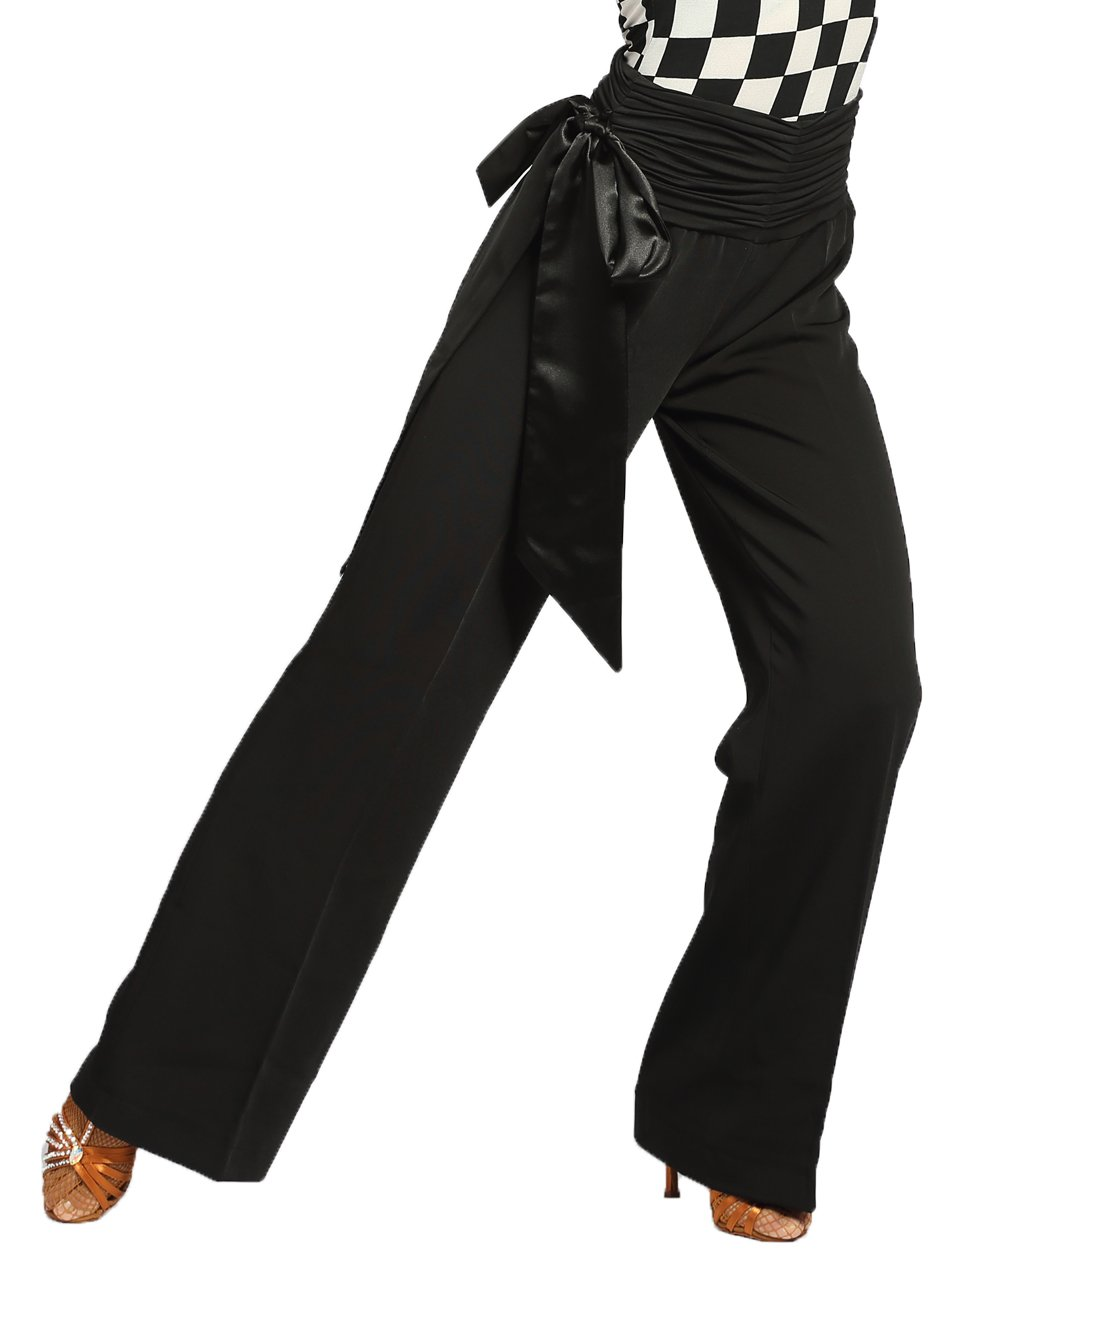 SCGGINTTANZ G4007 Modern Ballroom Dance Professional Satin Ribbon Elastic Straight Trousers Pants ((FBA) Black, XL) by SCGGINTTANZ